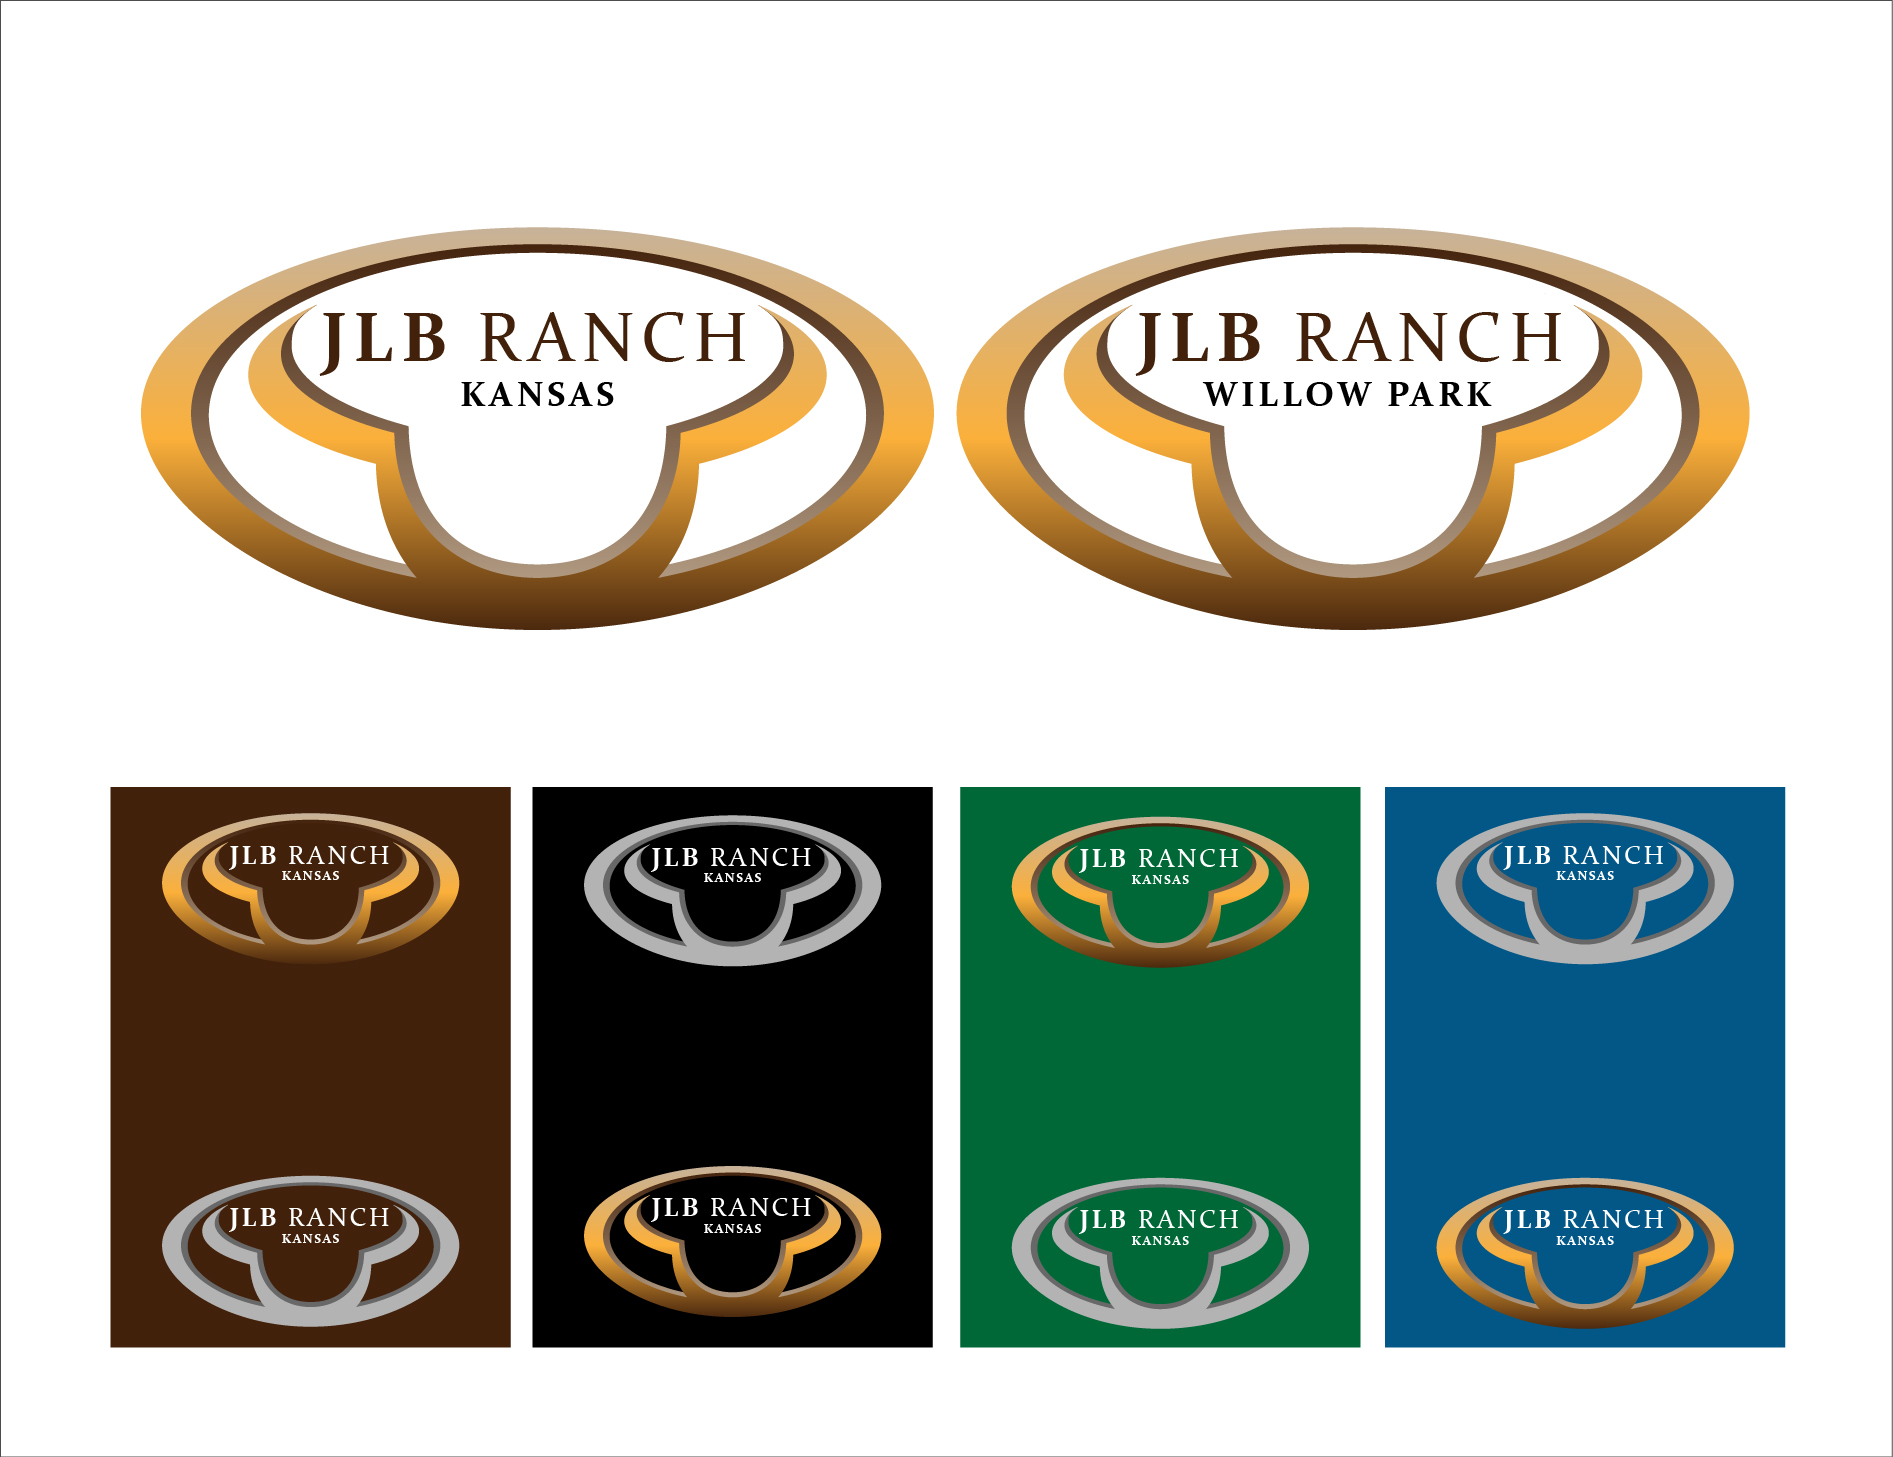 Logo Design by 3draw - Entry No. 58 in the Logo Design Contest Logo Design Needed for Exciting New Company JLB Ranch Kansas.